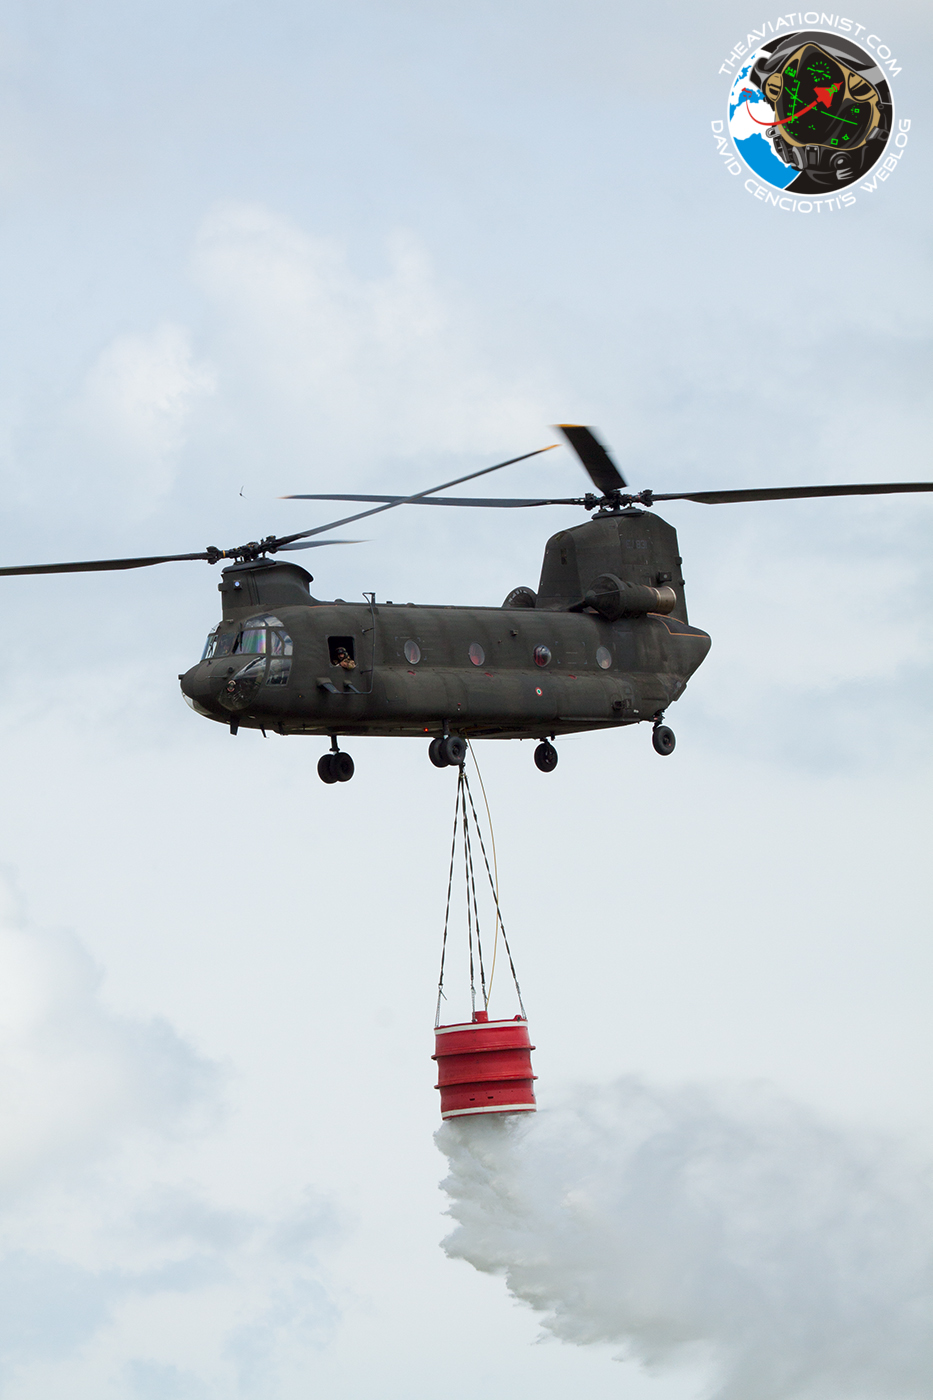 Special colored CH-47 Chinook helicopter to celebrate the